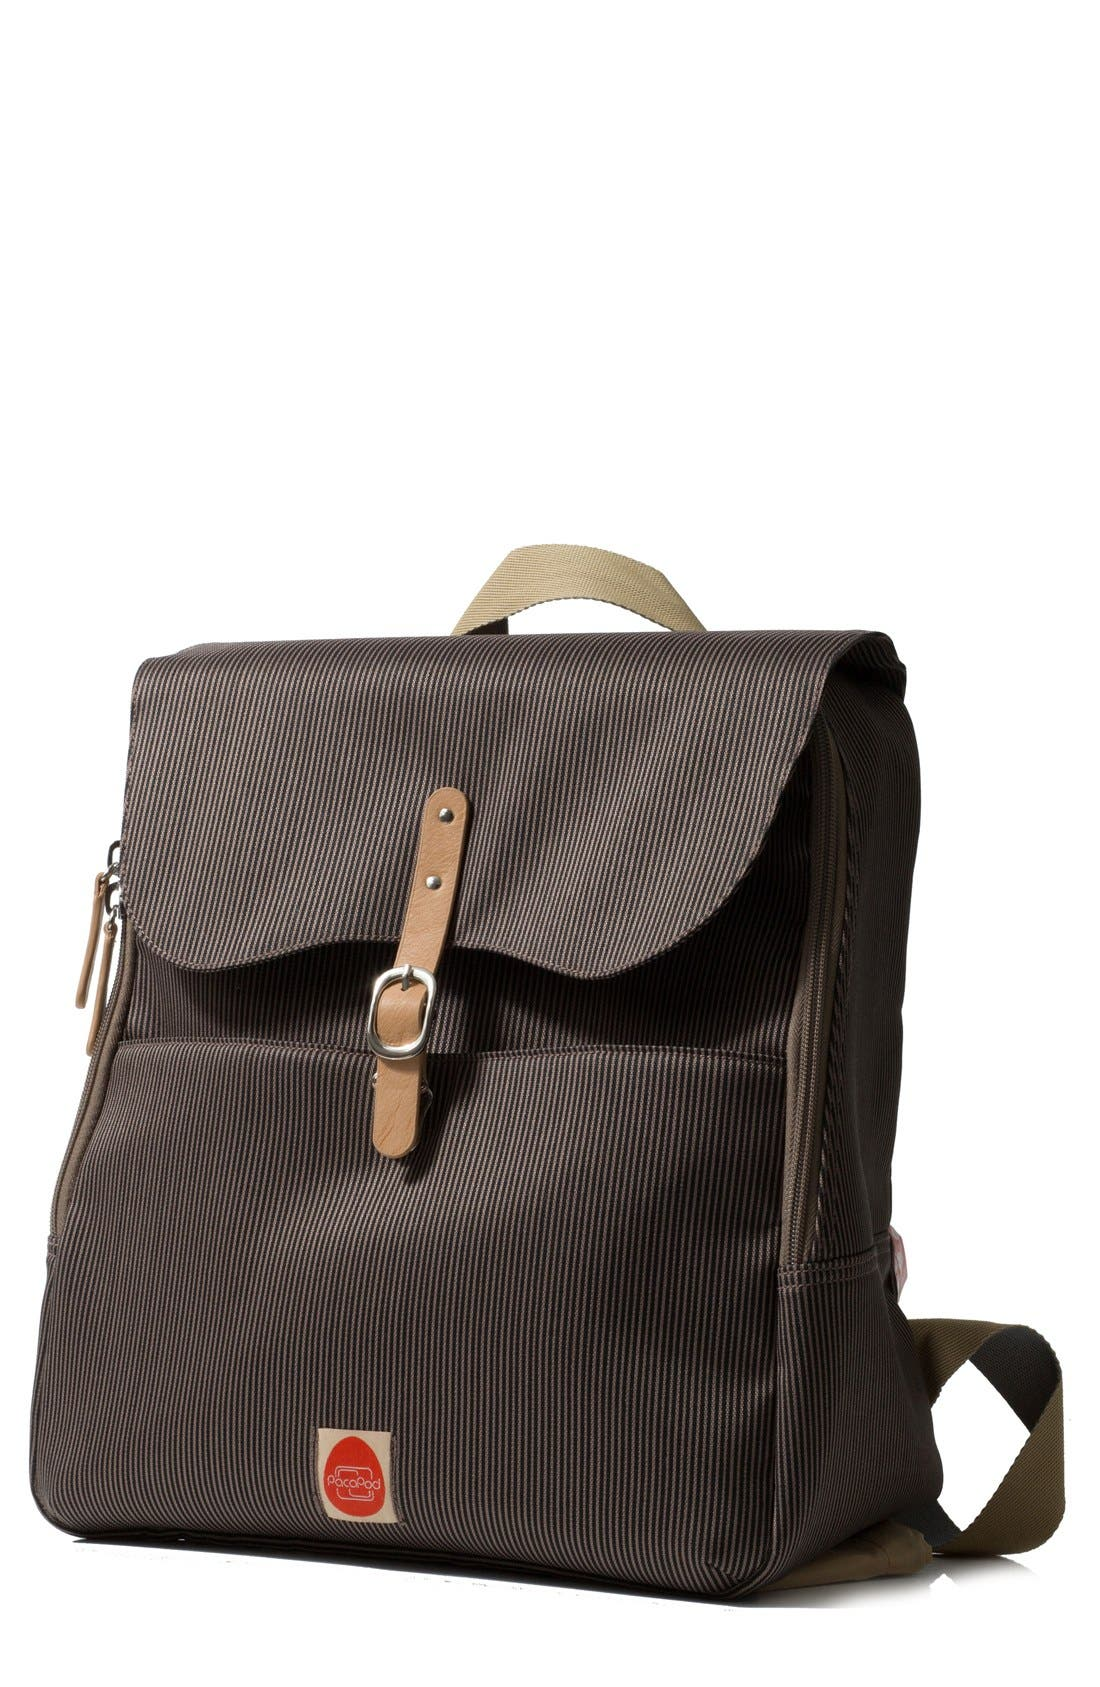 'Hastings' Diaper Bag,                         Main,                         color, Mocha